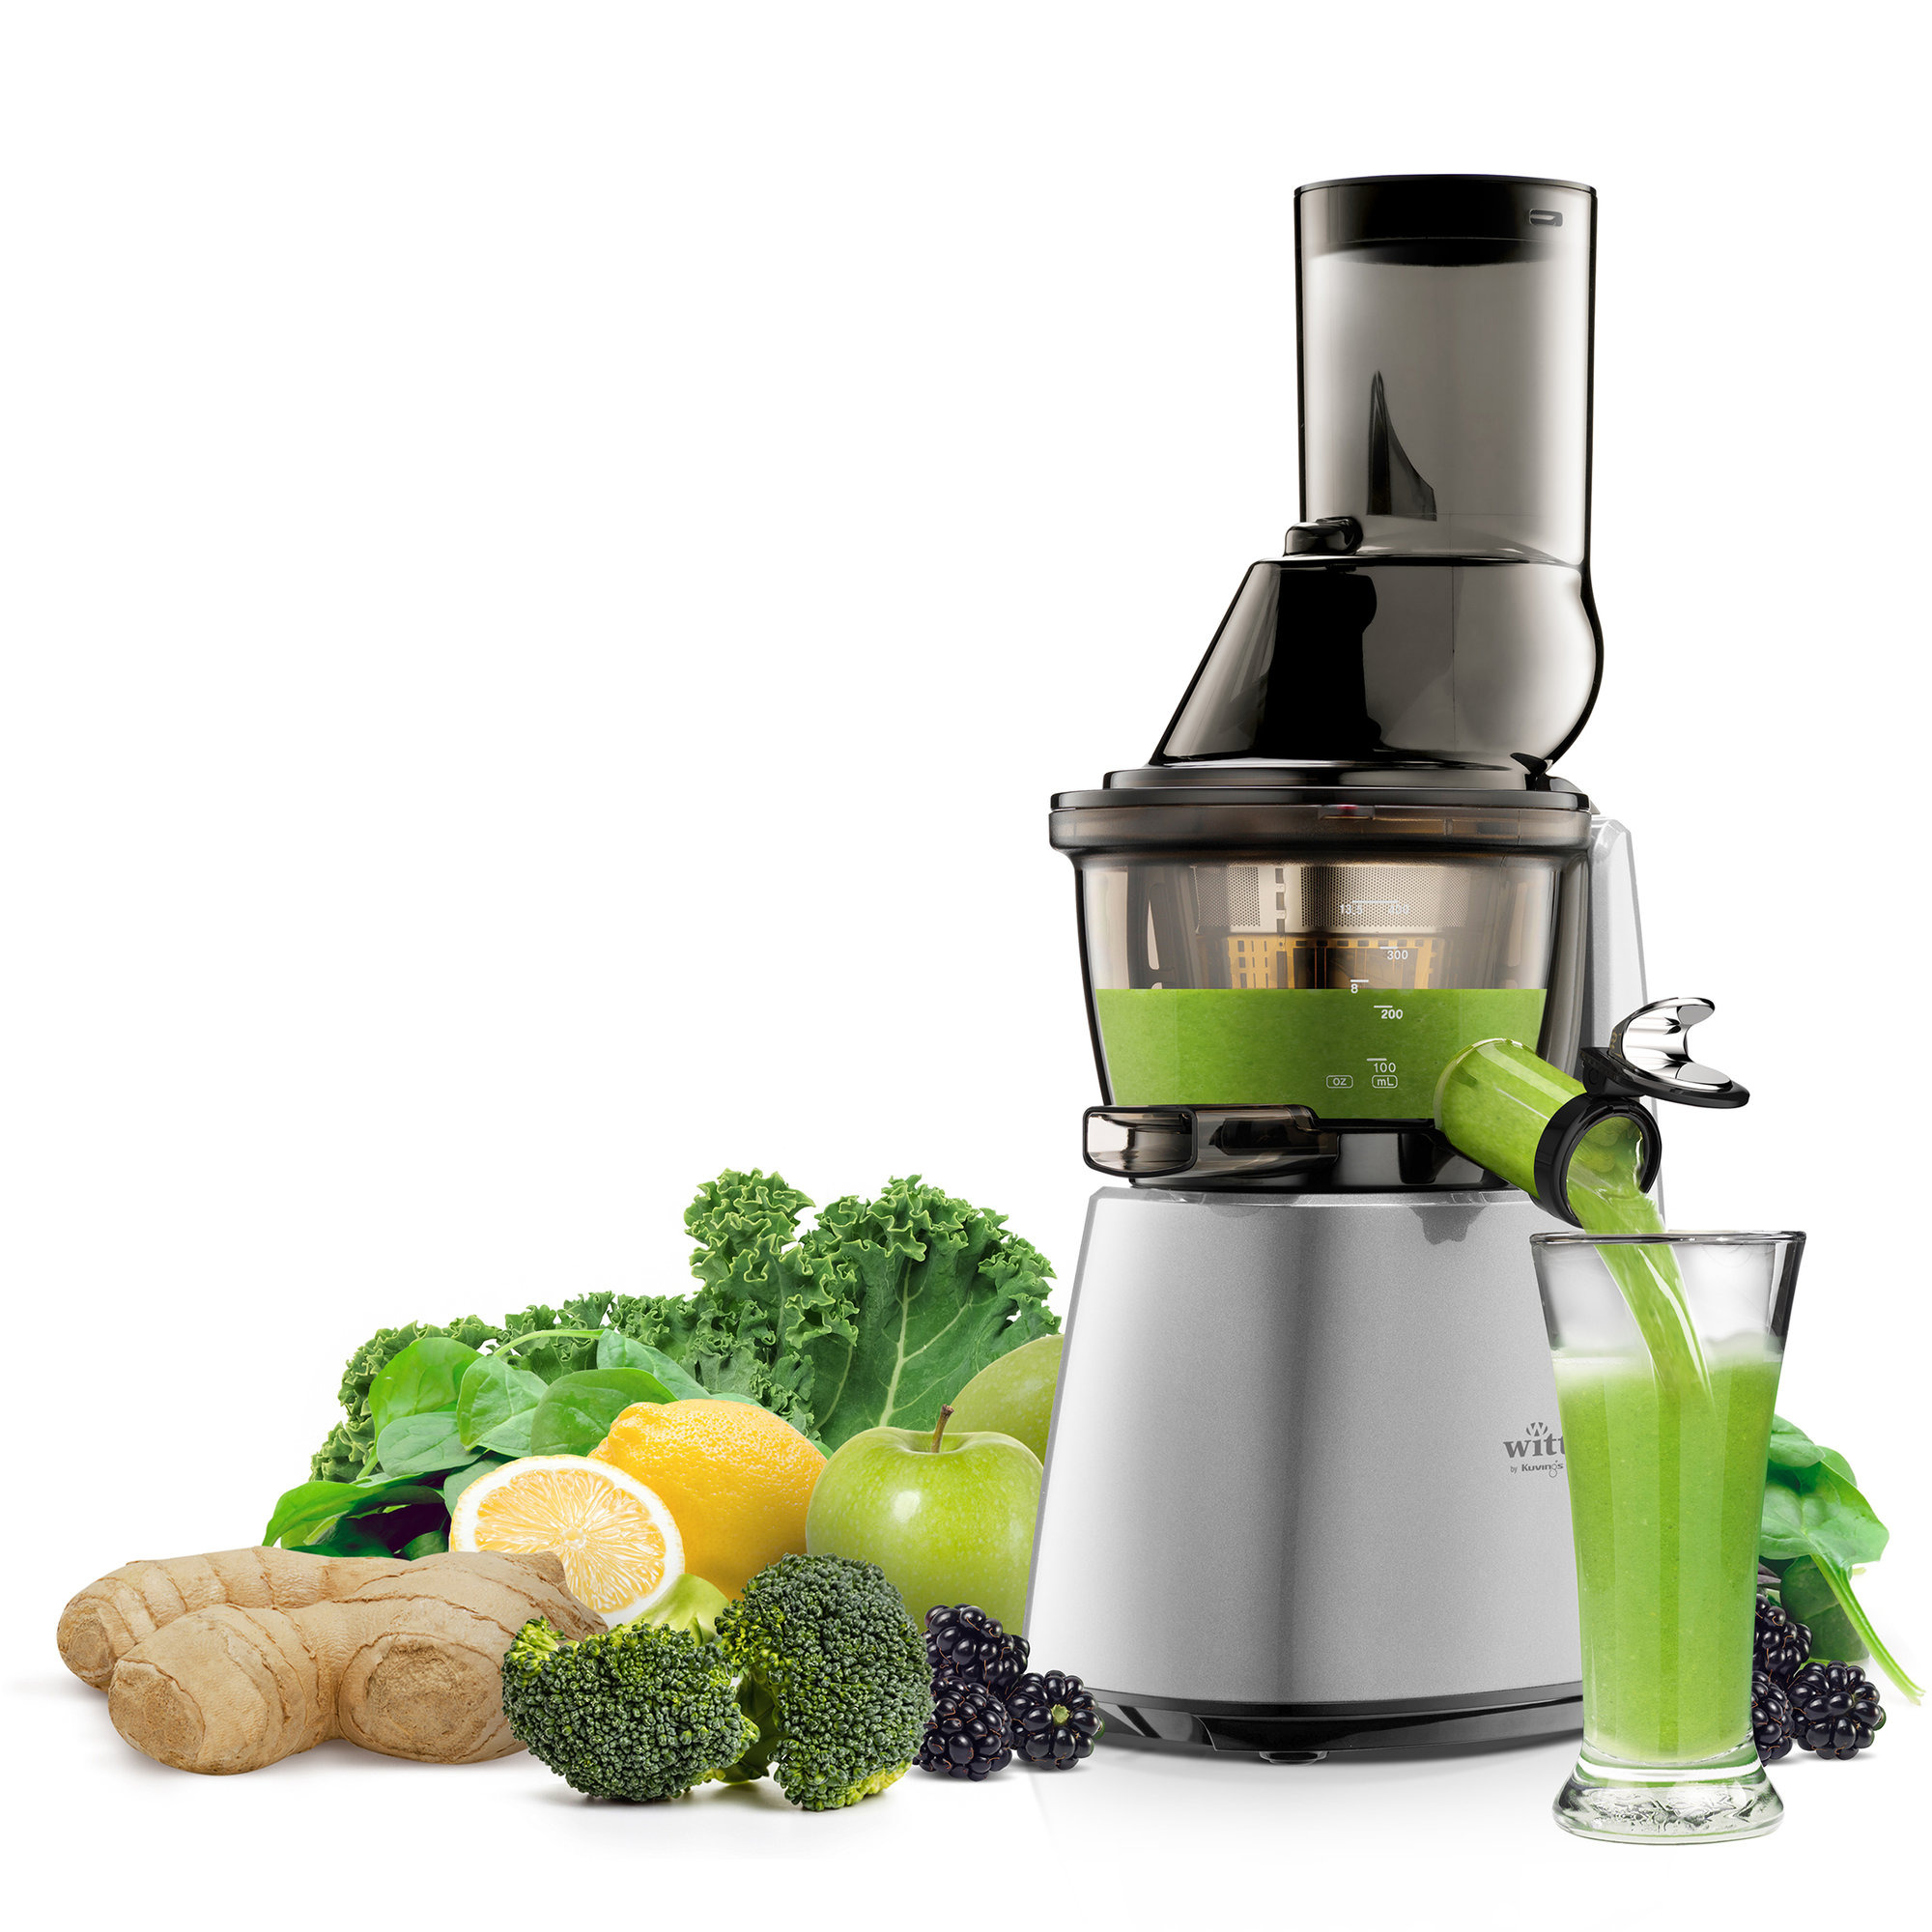 Slow Juicer Witt By Kuvings B6100 : C9600 S Slow Juicer solv fra Witt by Kuvings Gratis Levering